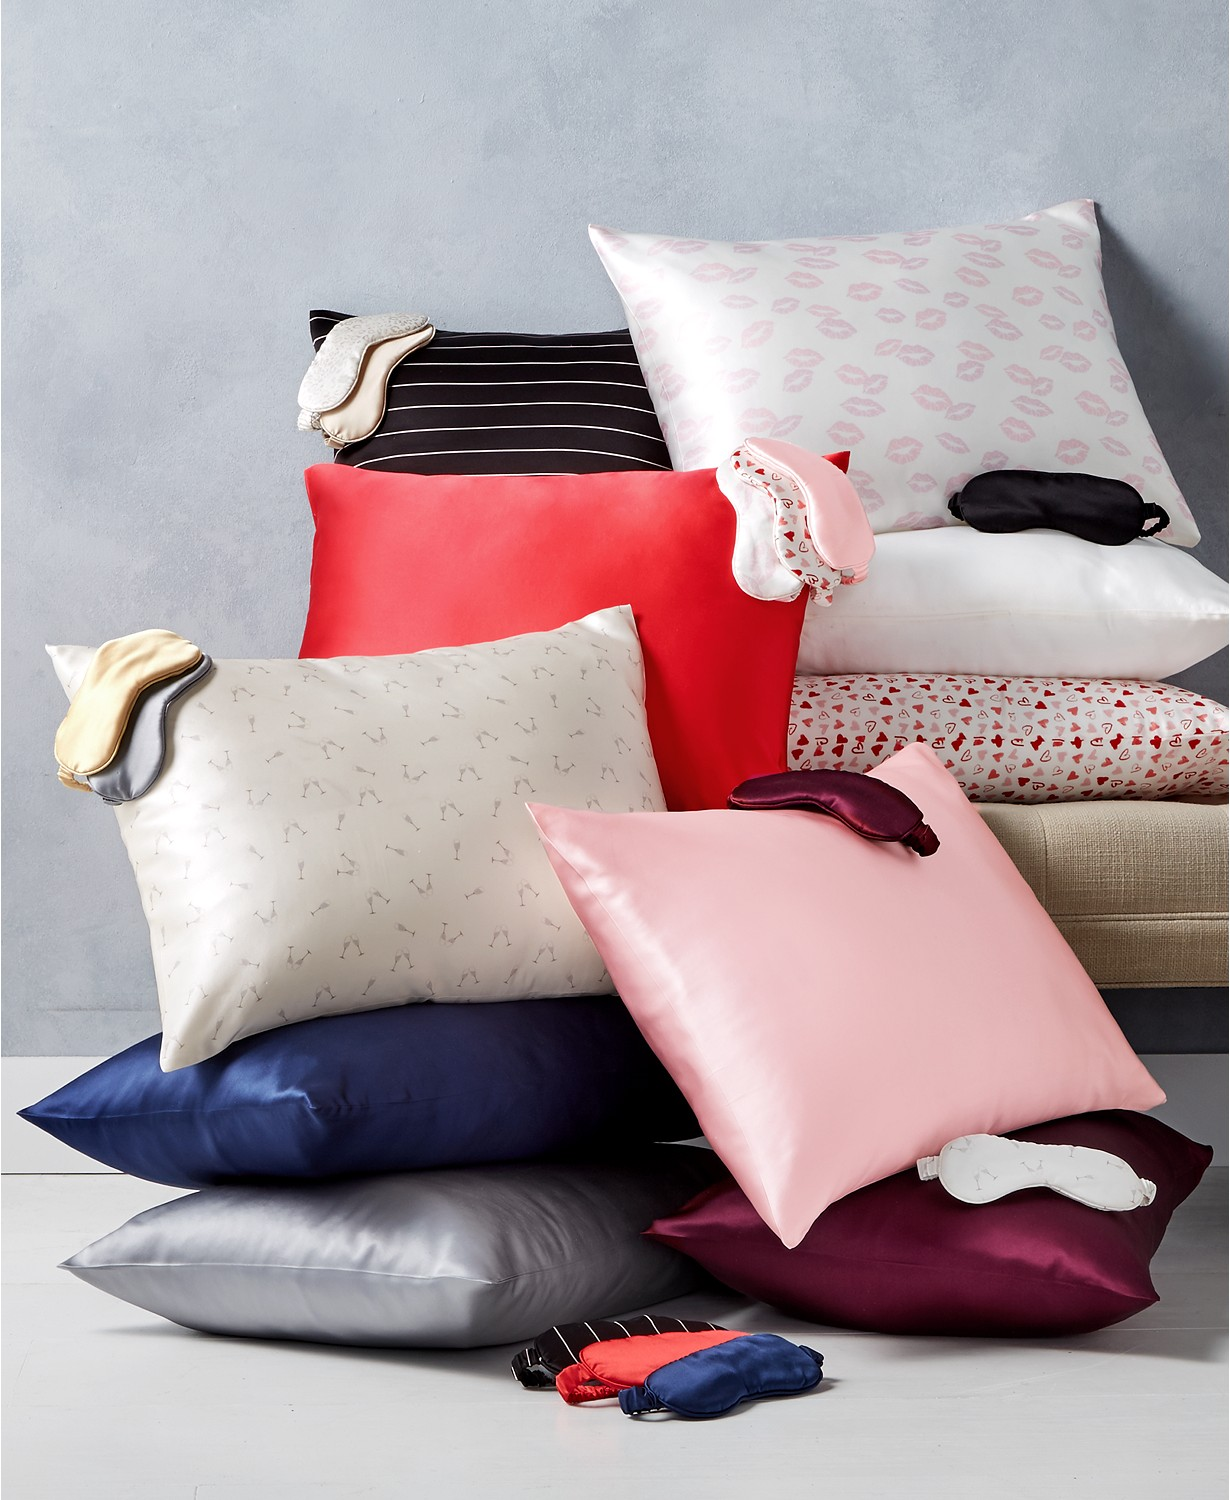 silk pillowcase and eye mask giftable collection from Macy's